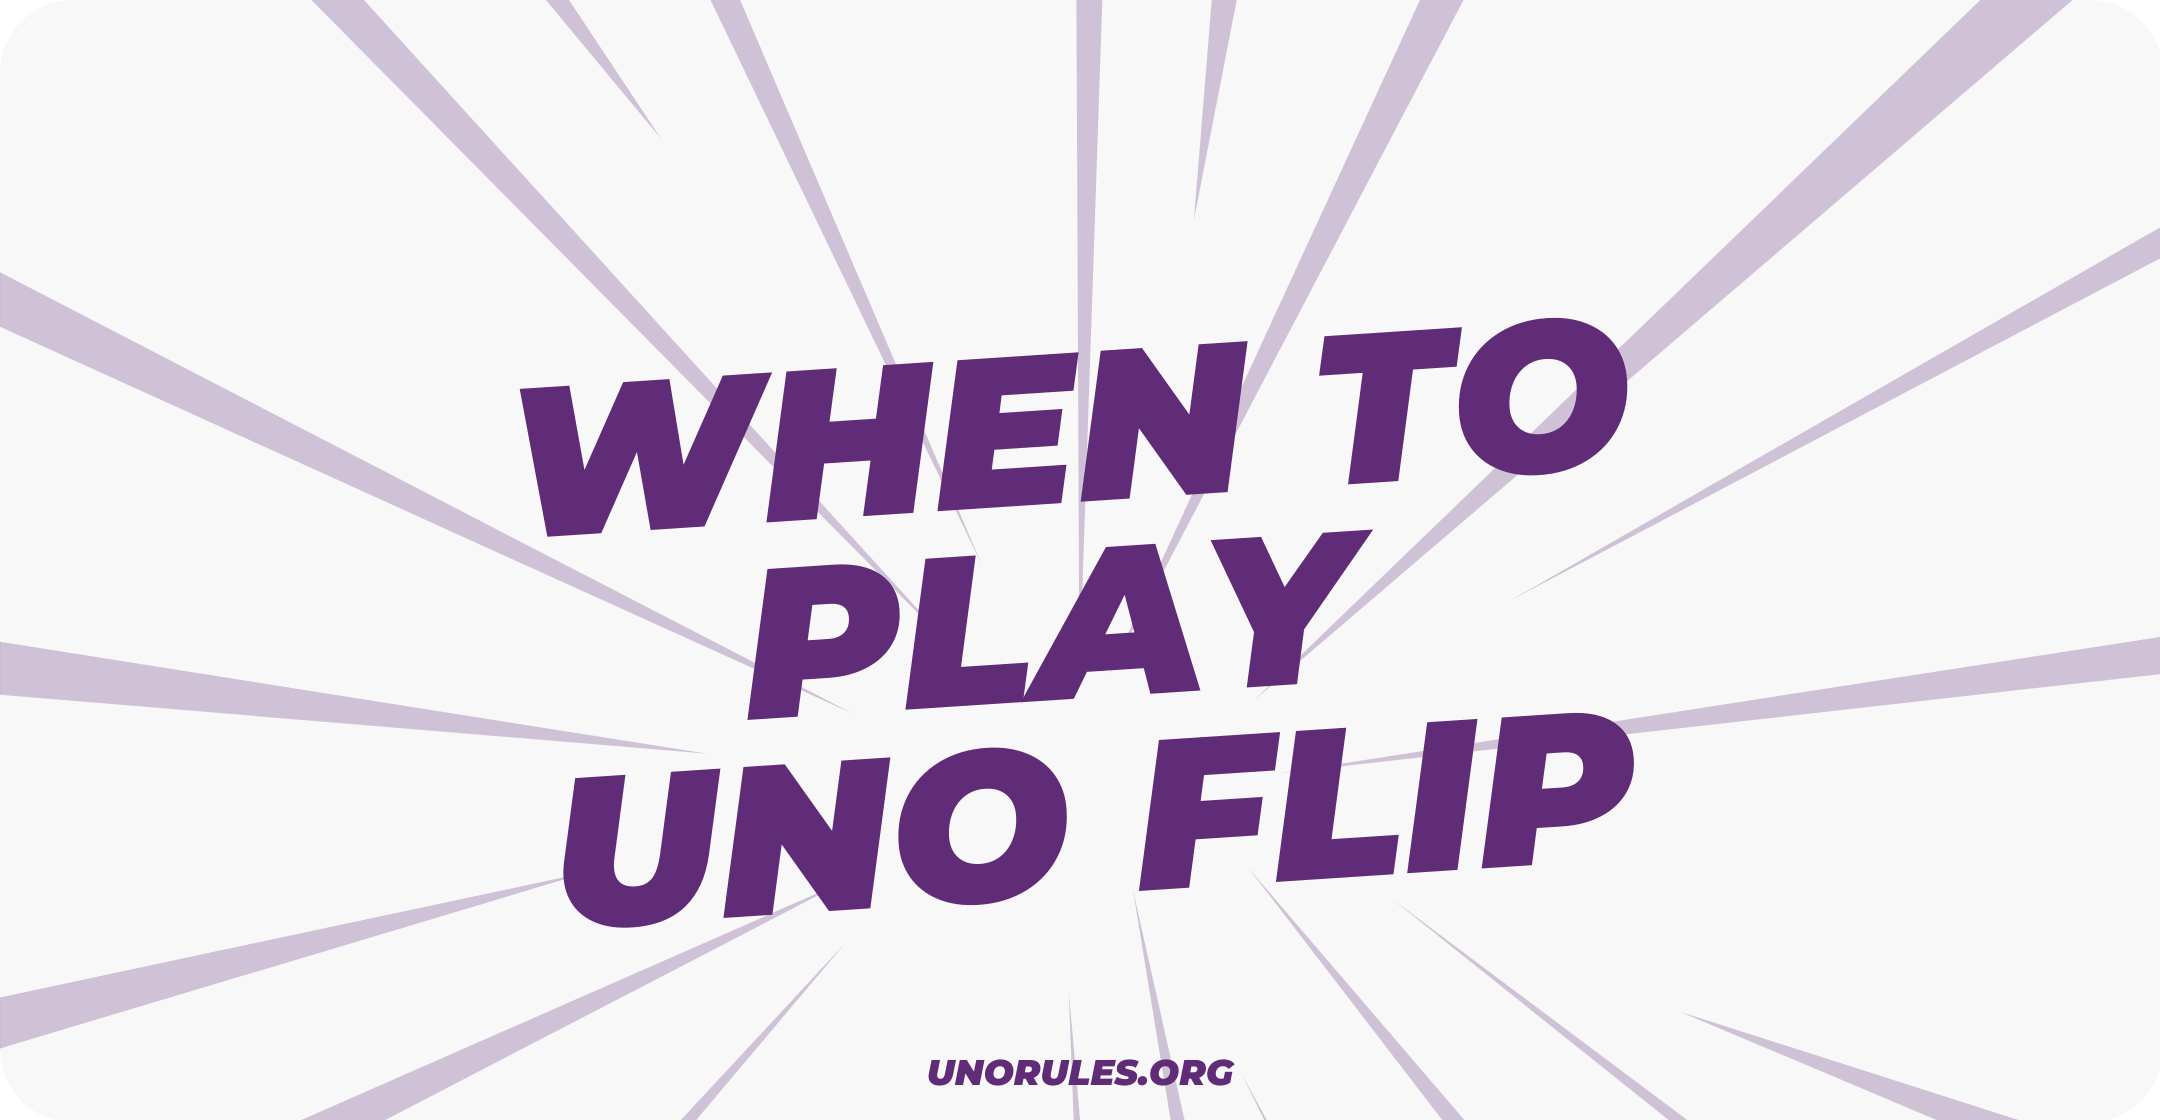 When to play Uno Flip